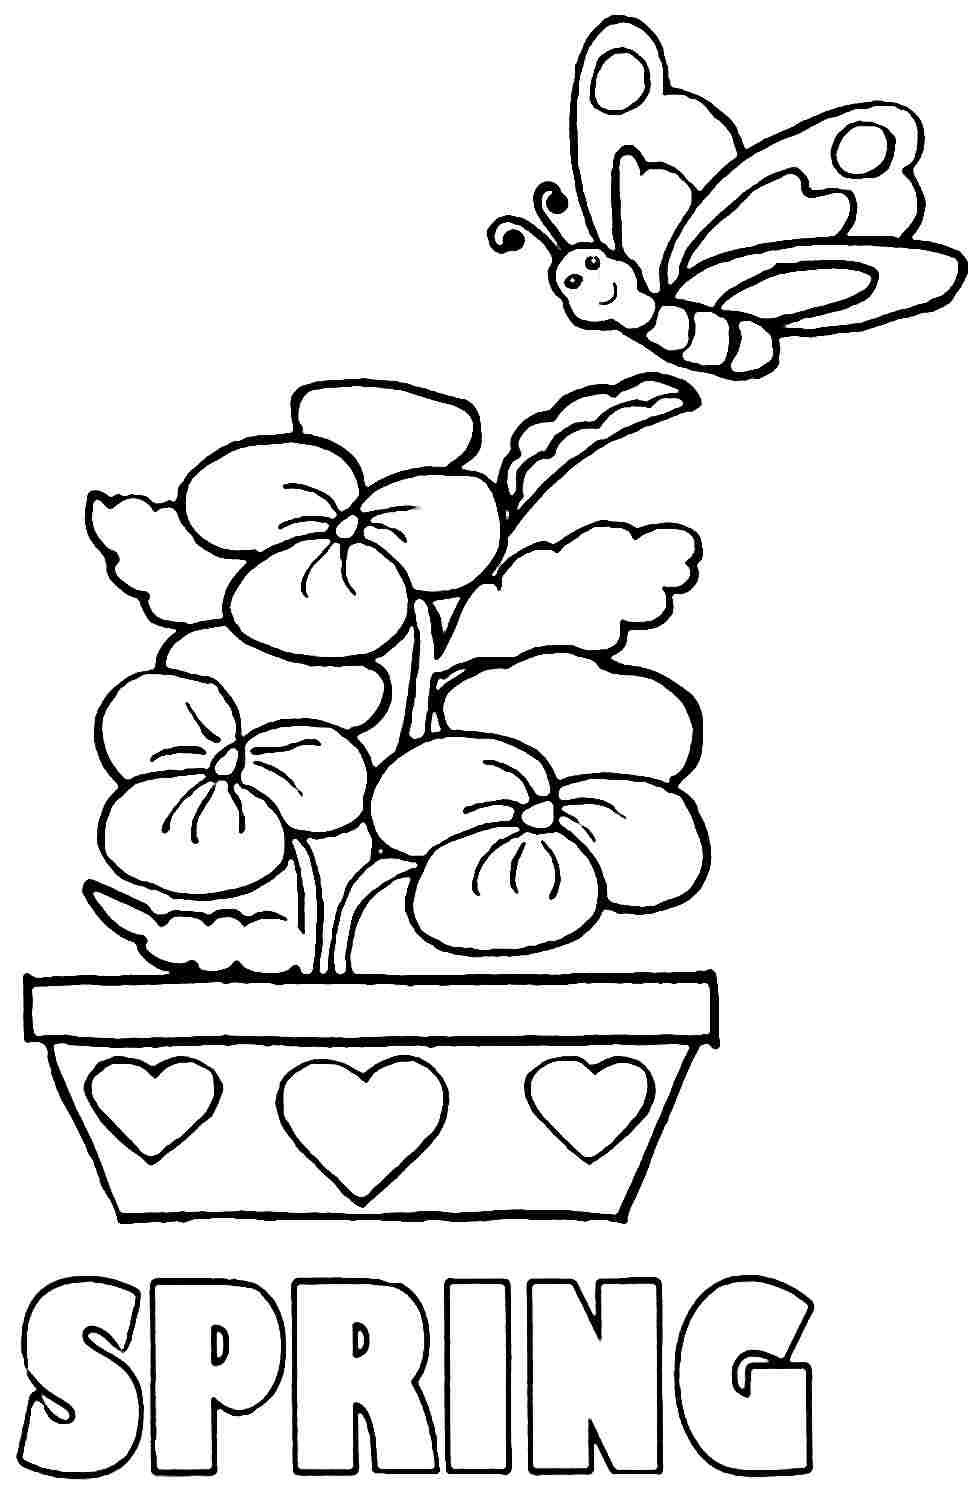 76 Spring Coloring Easy In 2020 Kindergarten Coloring Pages Spring Coloring Pages Spring Coloring Sheets